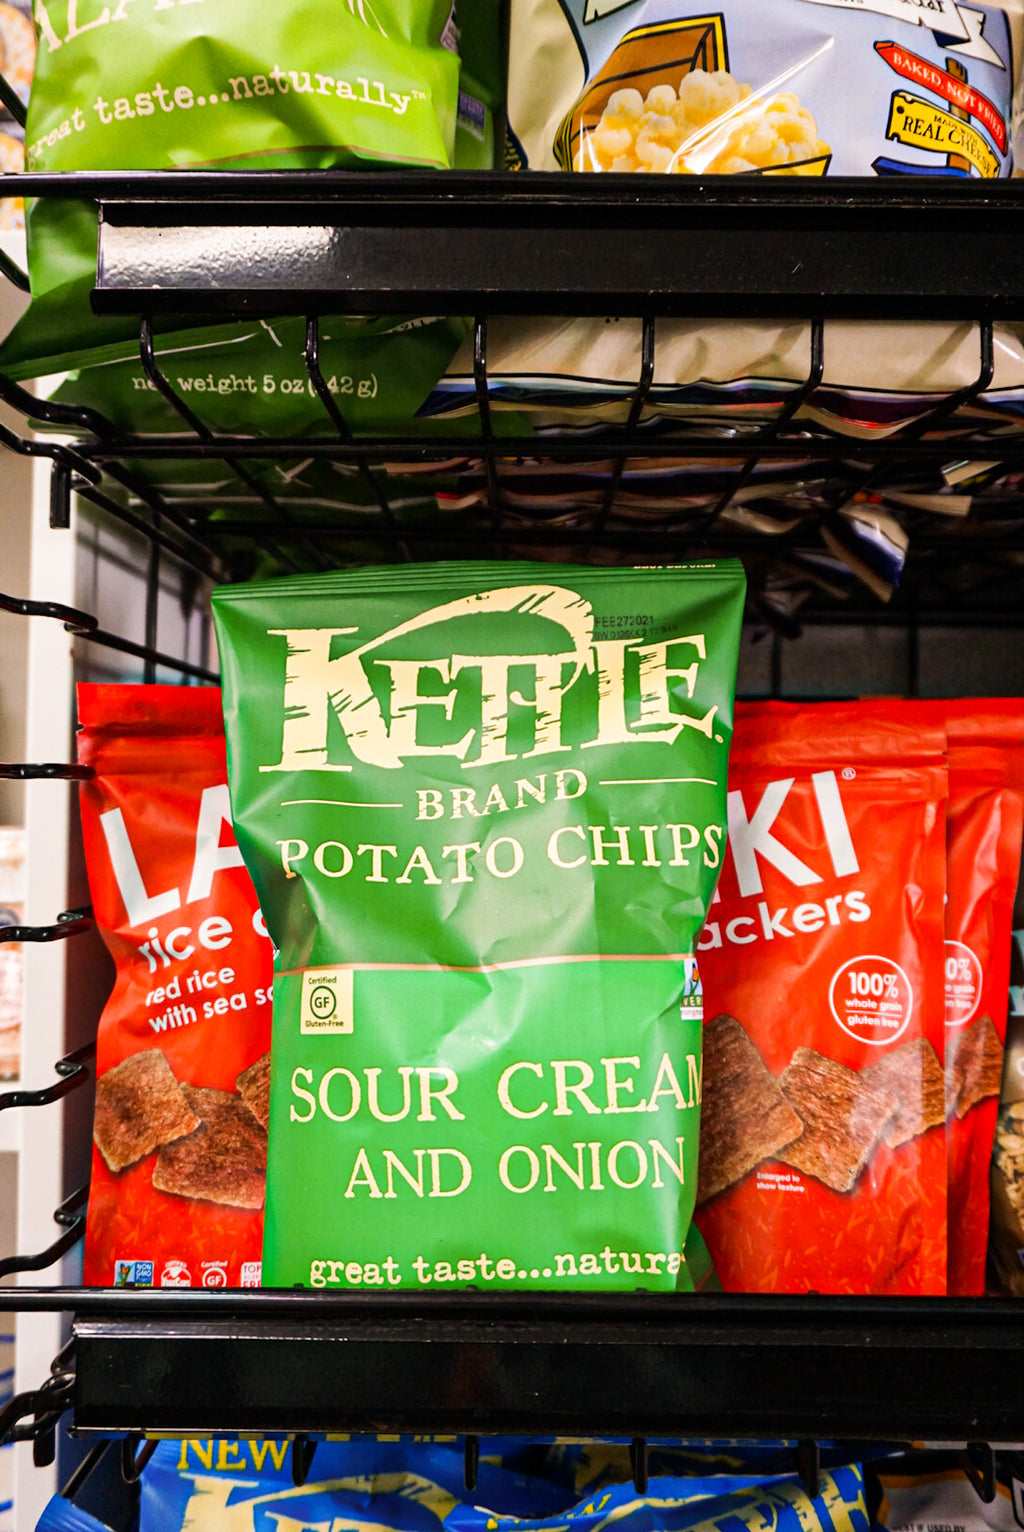 Kettle Potato Chips Sour Cream and Onion 5 oz - New Canaan